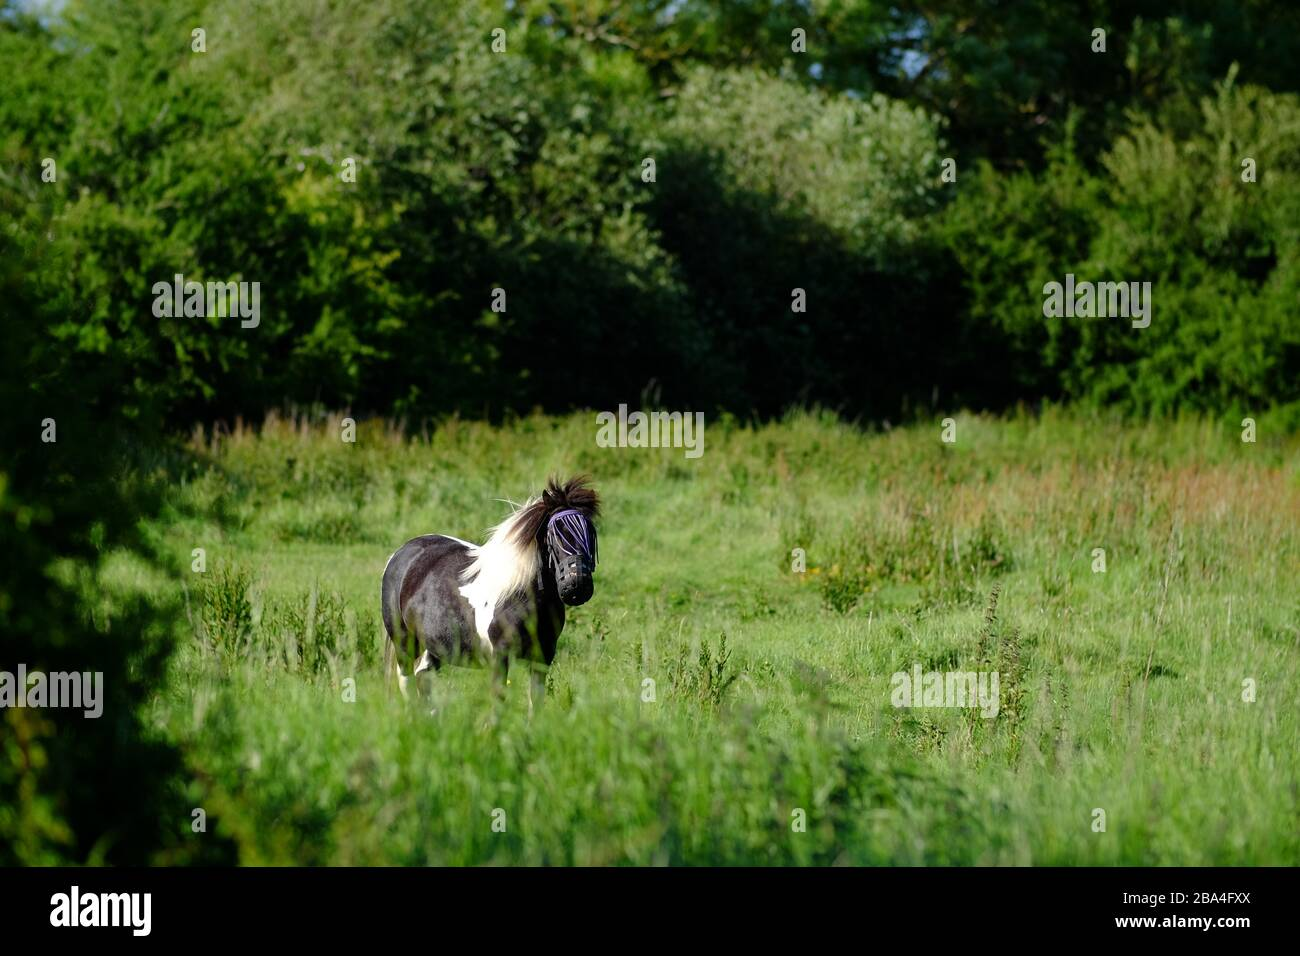 Small pony in a meadow wearing a face guard to protect against insects. Stock Photo